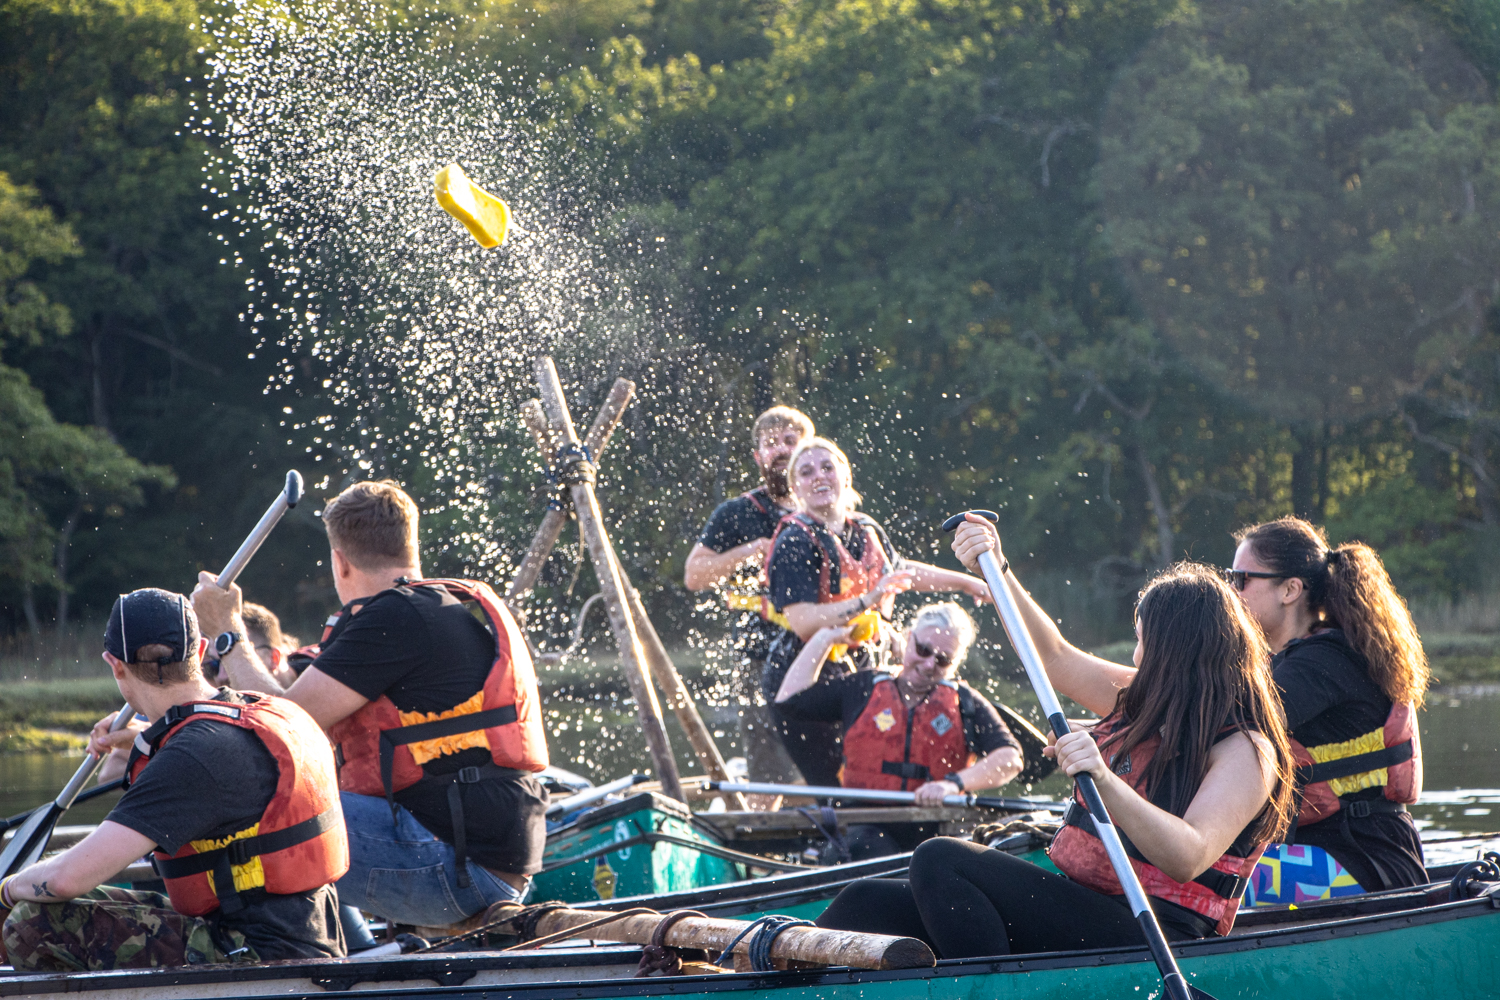 A group taking part in raft building on the Beaulieu River.